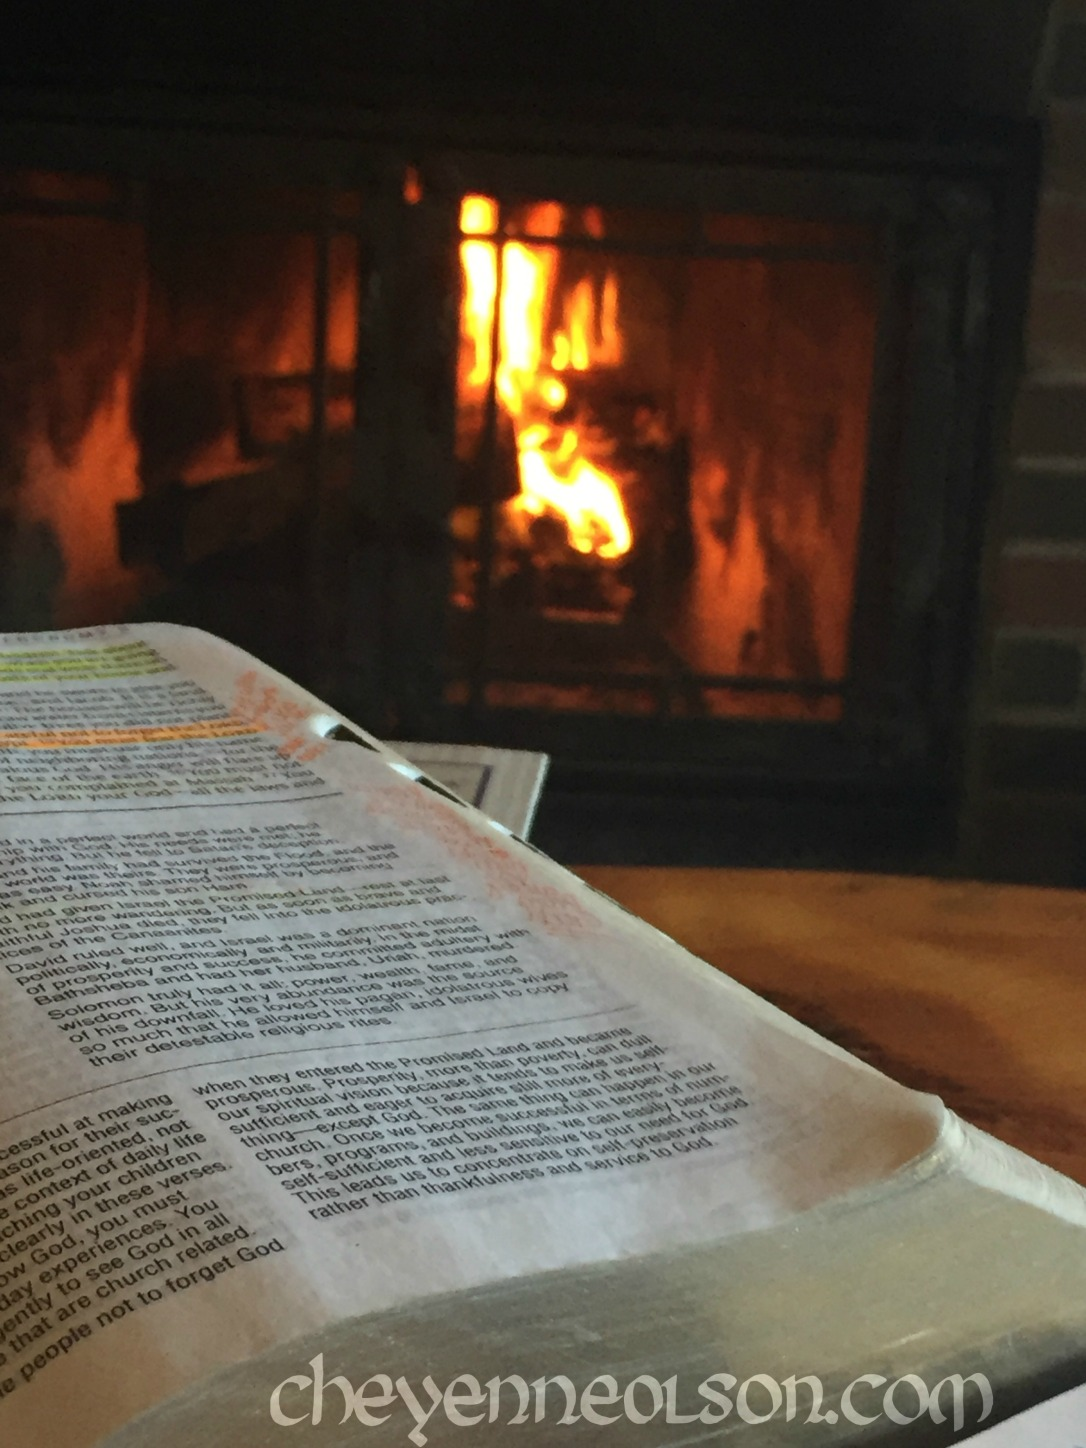 Fire and Bible